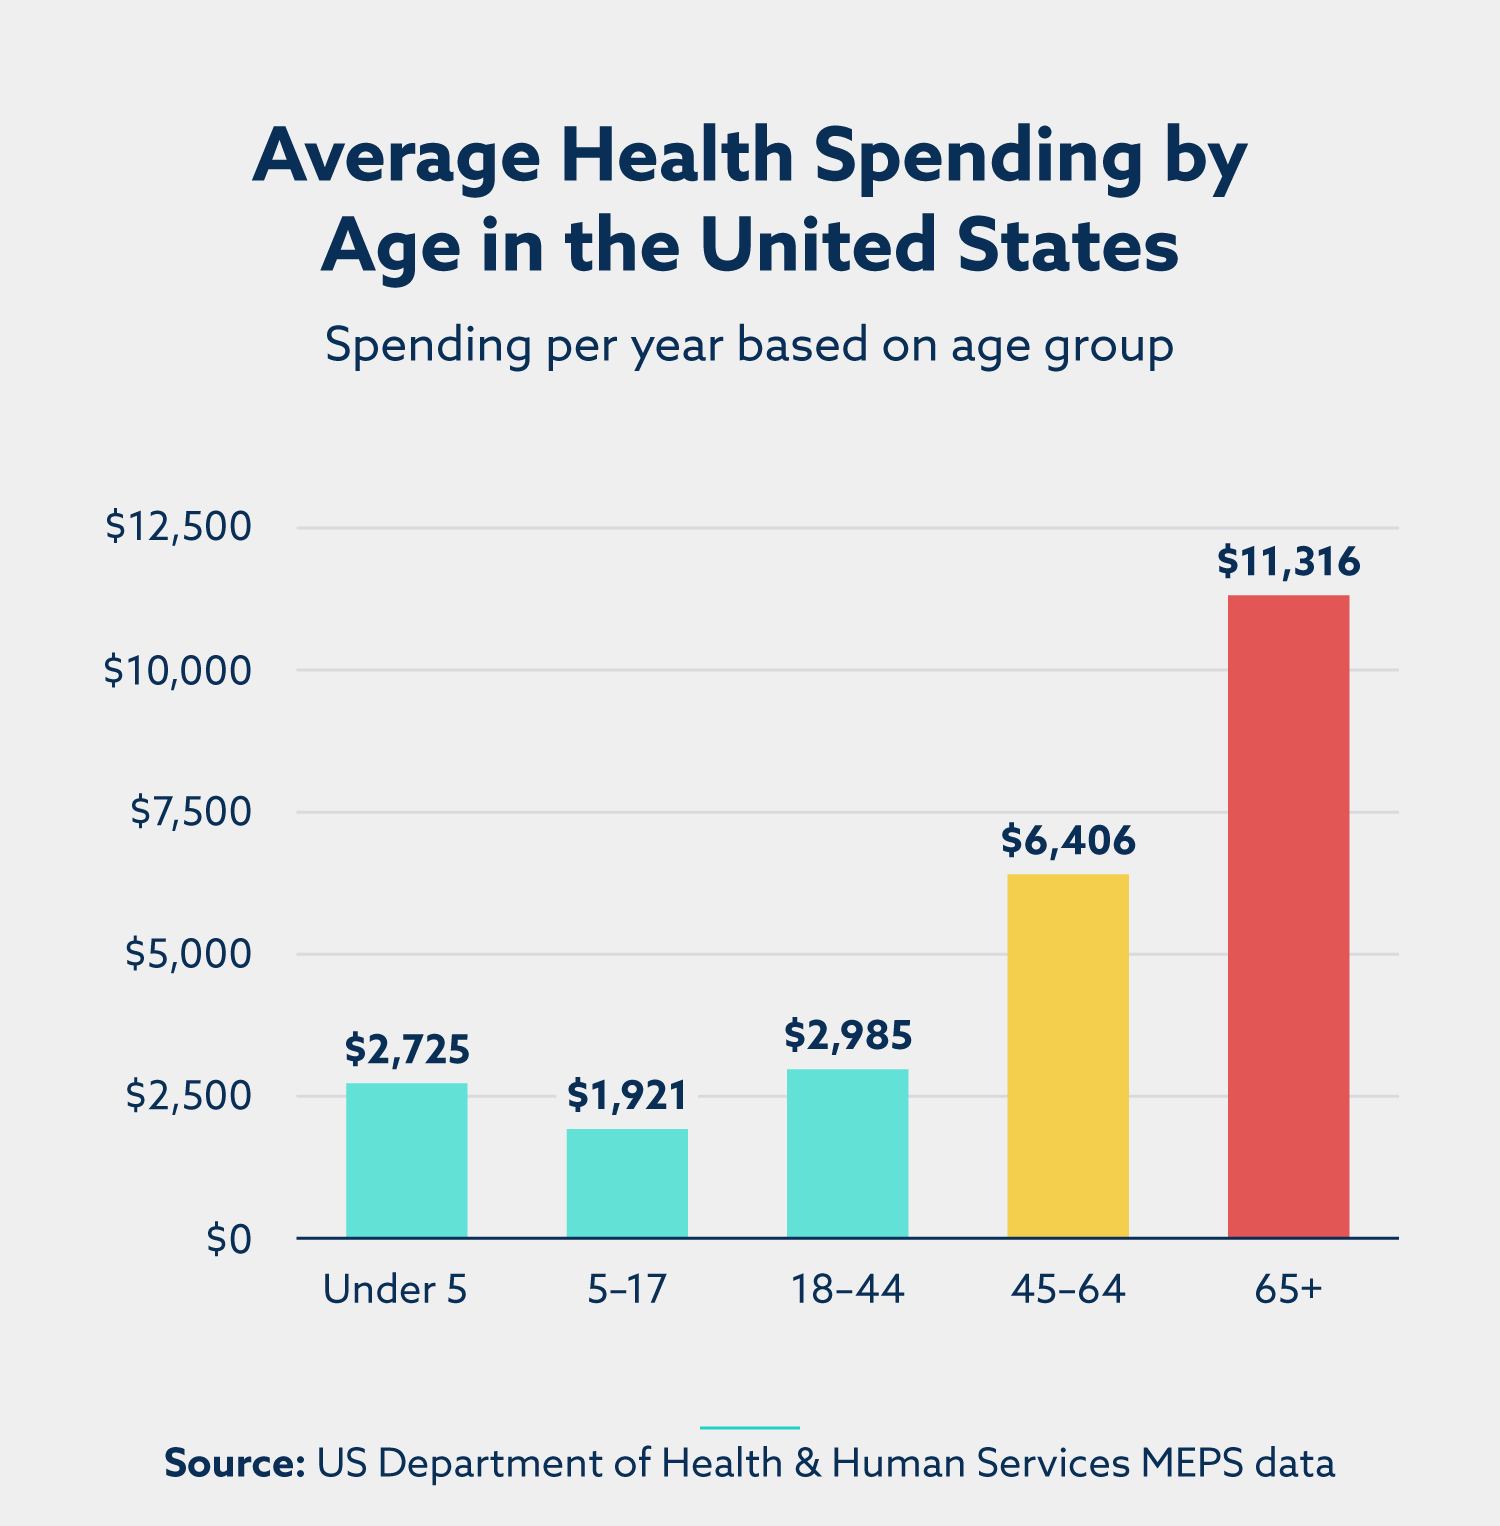 bar graph of average health spending by age in the united states